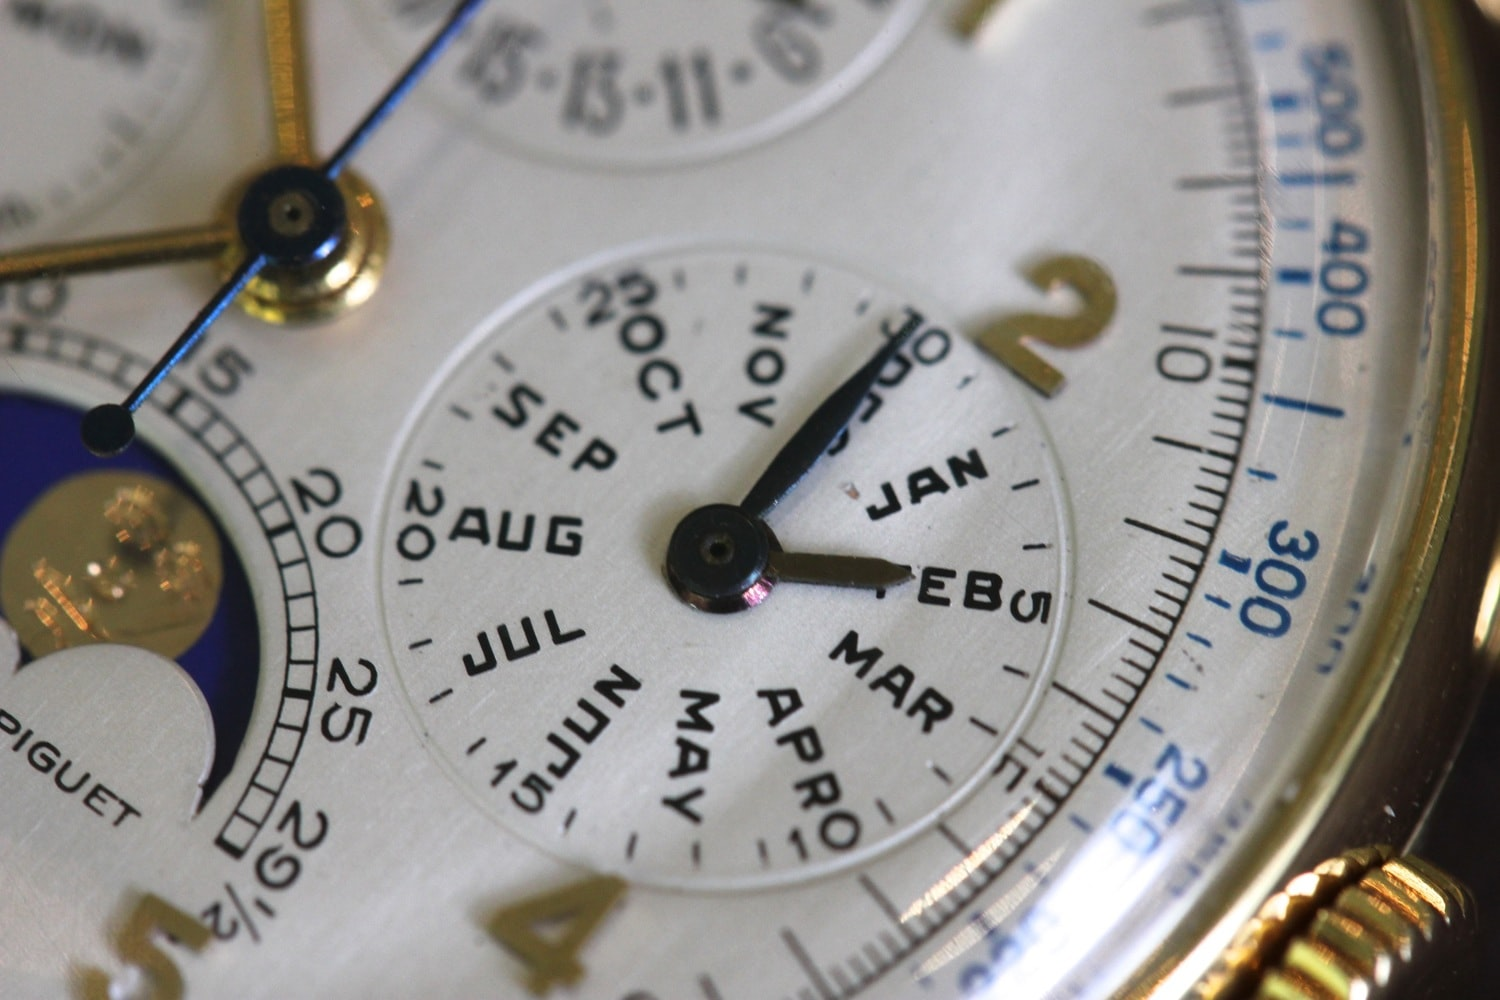 Breaking News: The Single Largest Collection Of Vintage Audemars Piguet Has Been Sold, And All 89 Timepieces Are Going Back To Audemars Piguet Breaking News: The Single Largest Collection Of Vintage Audemars Piguet Has Been Sold, And All 89 Timepieces Are Going Back To Audemars Piguet w